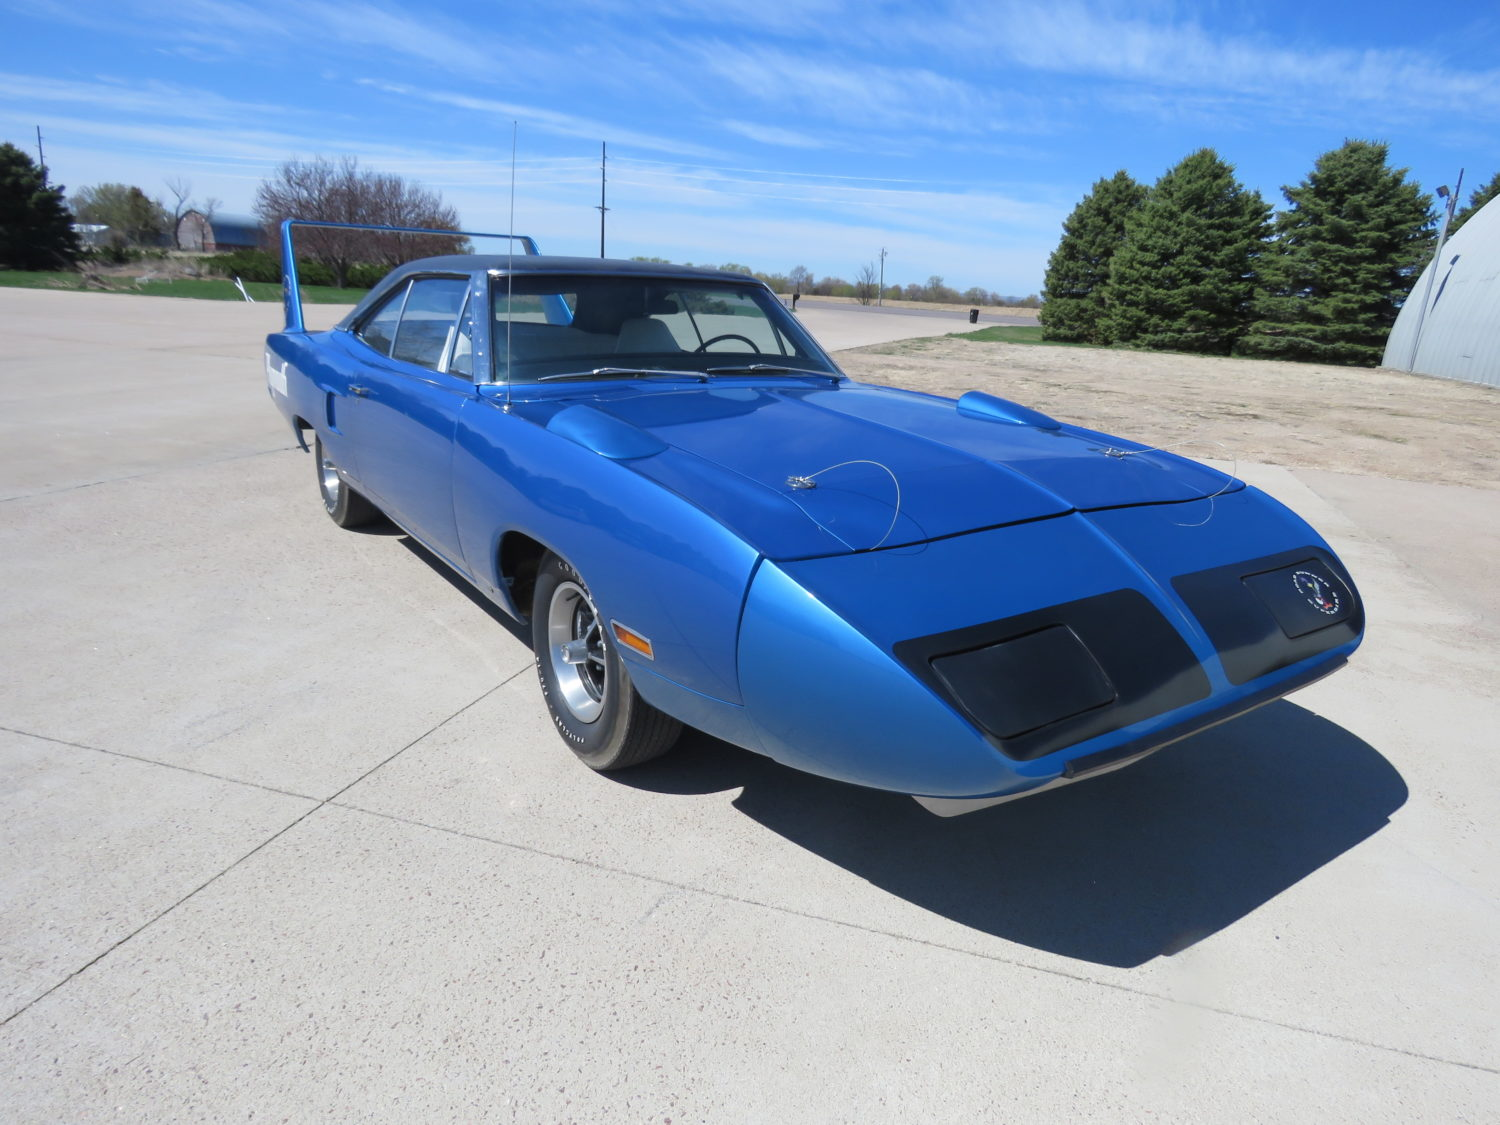 MOPAR Collector Cars- The Jim Gesswein Classic Car Collection Auction- LIVE Onsite Auction with Online Bidding - image 1